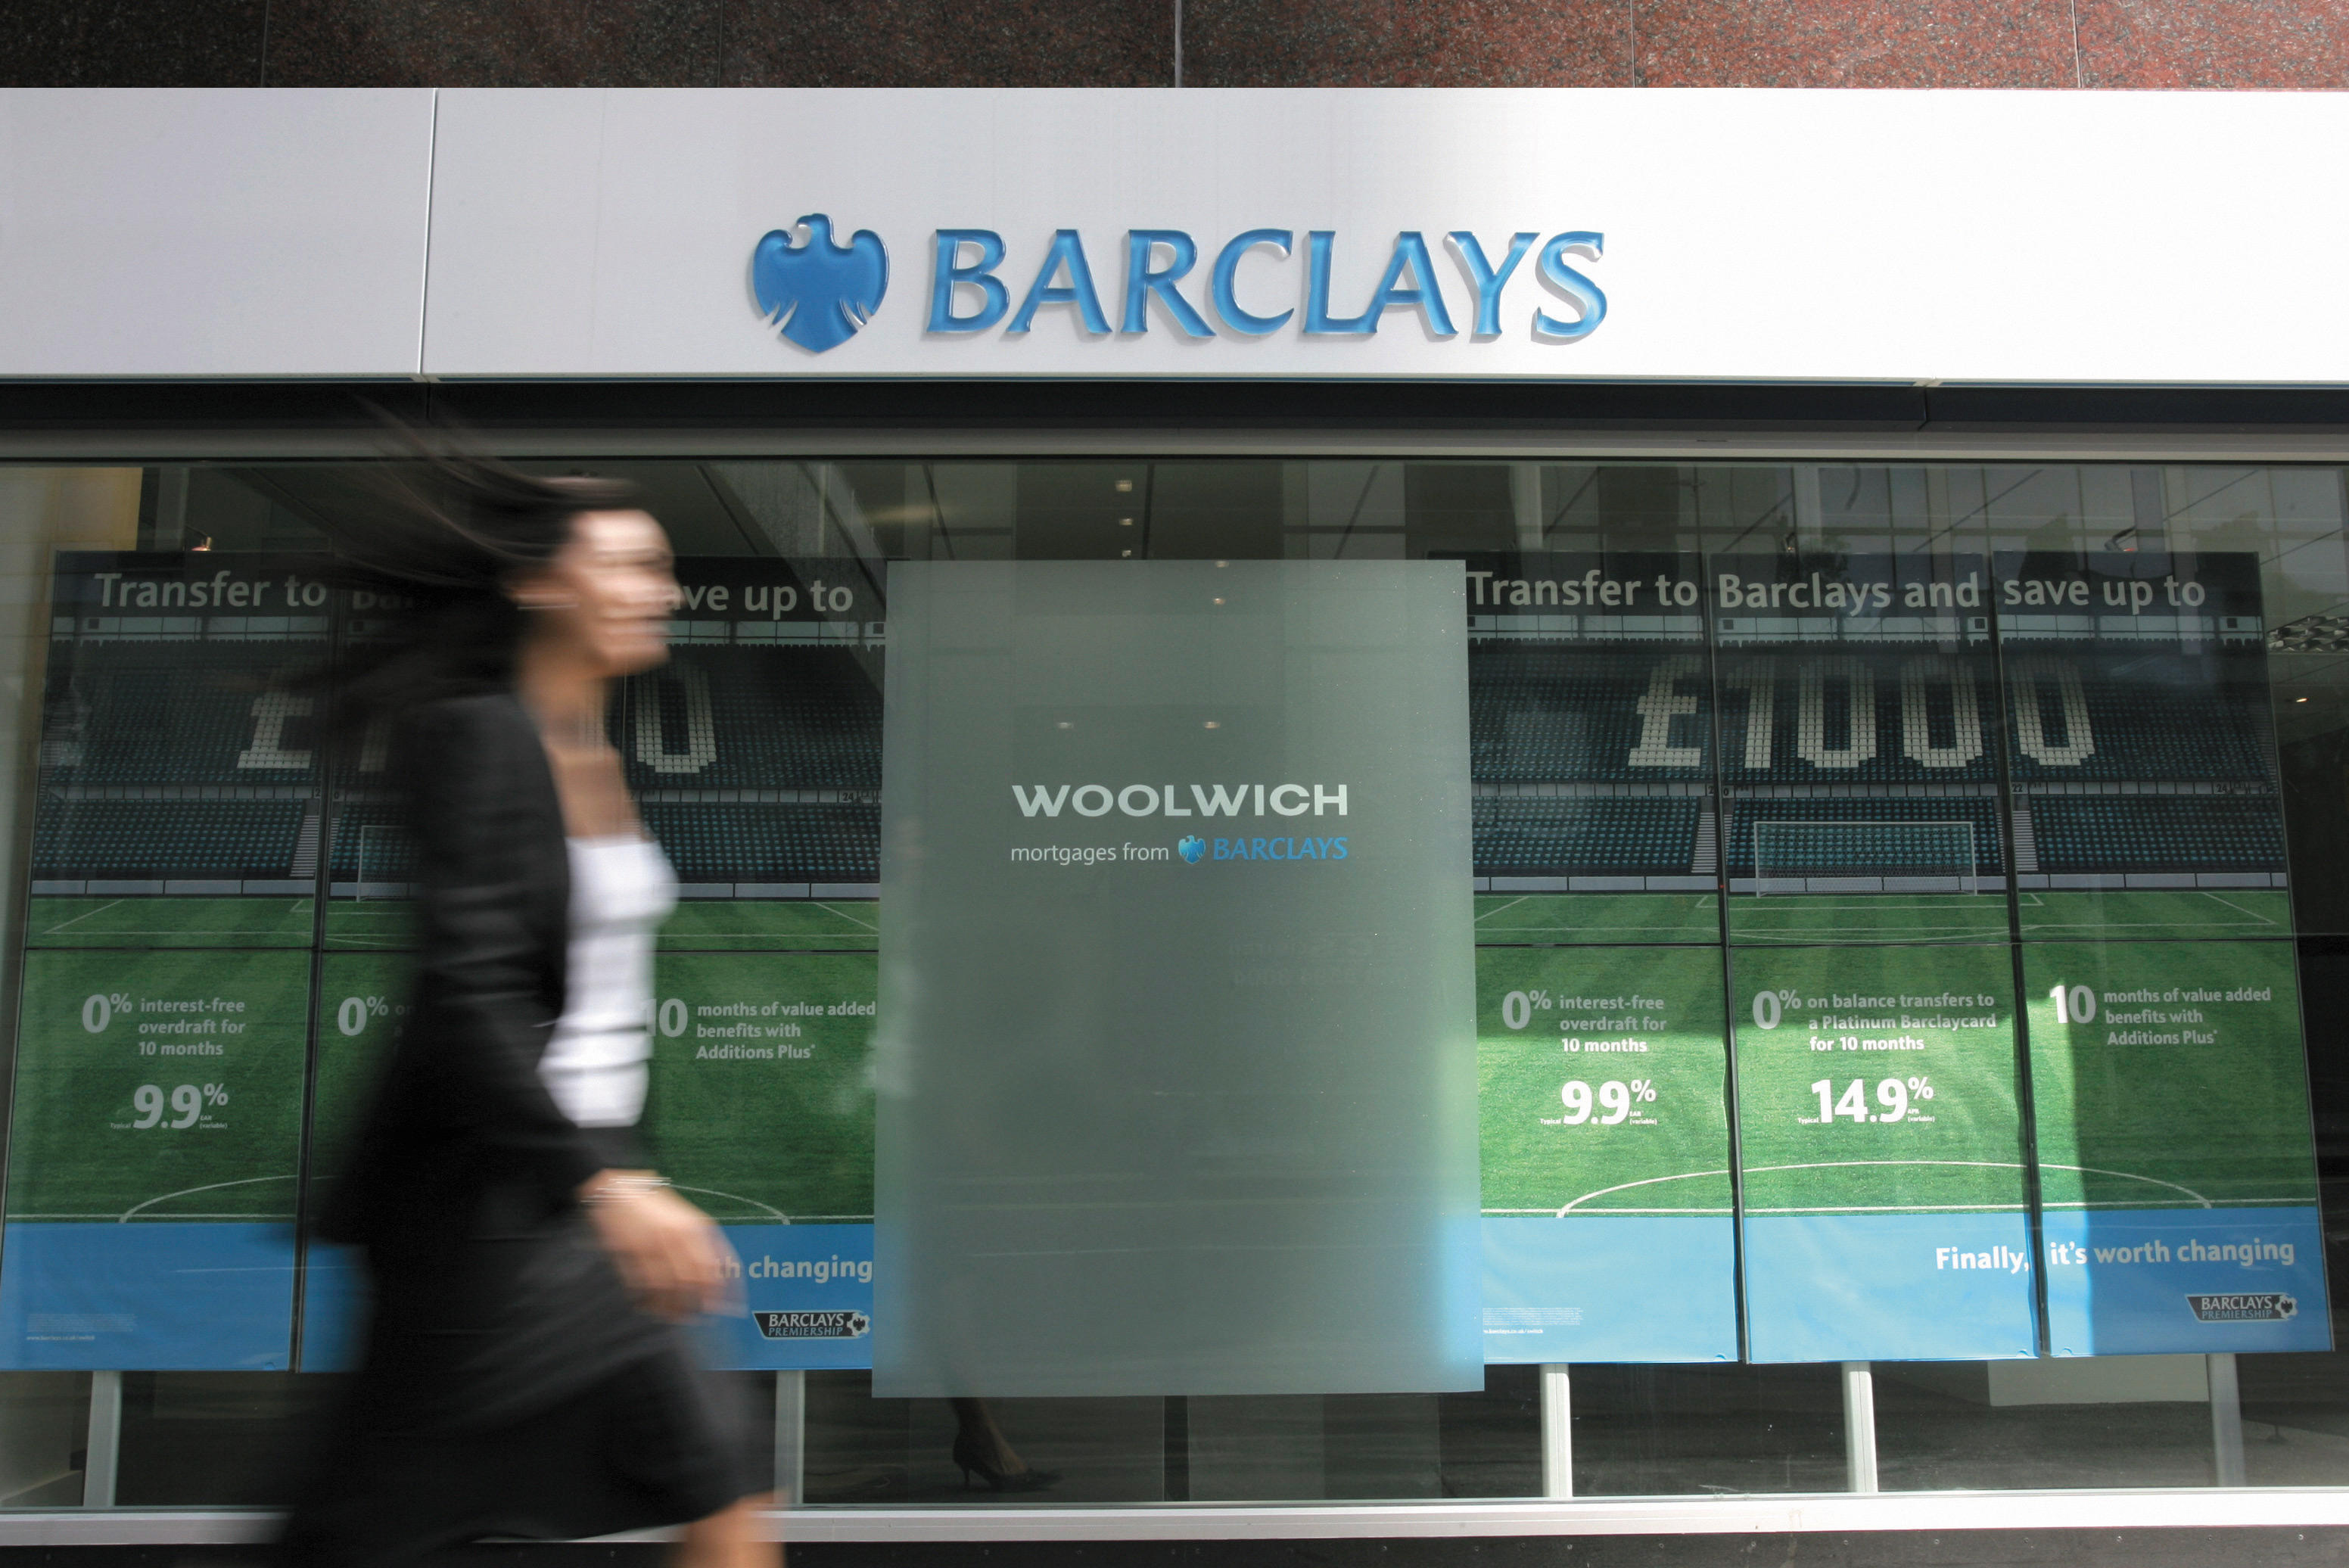 Barclays shifts perception by rolling out apprenticeship scheme for those over 50